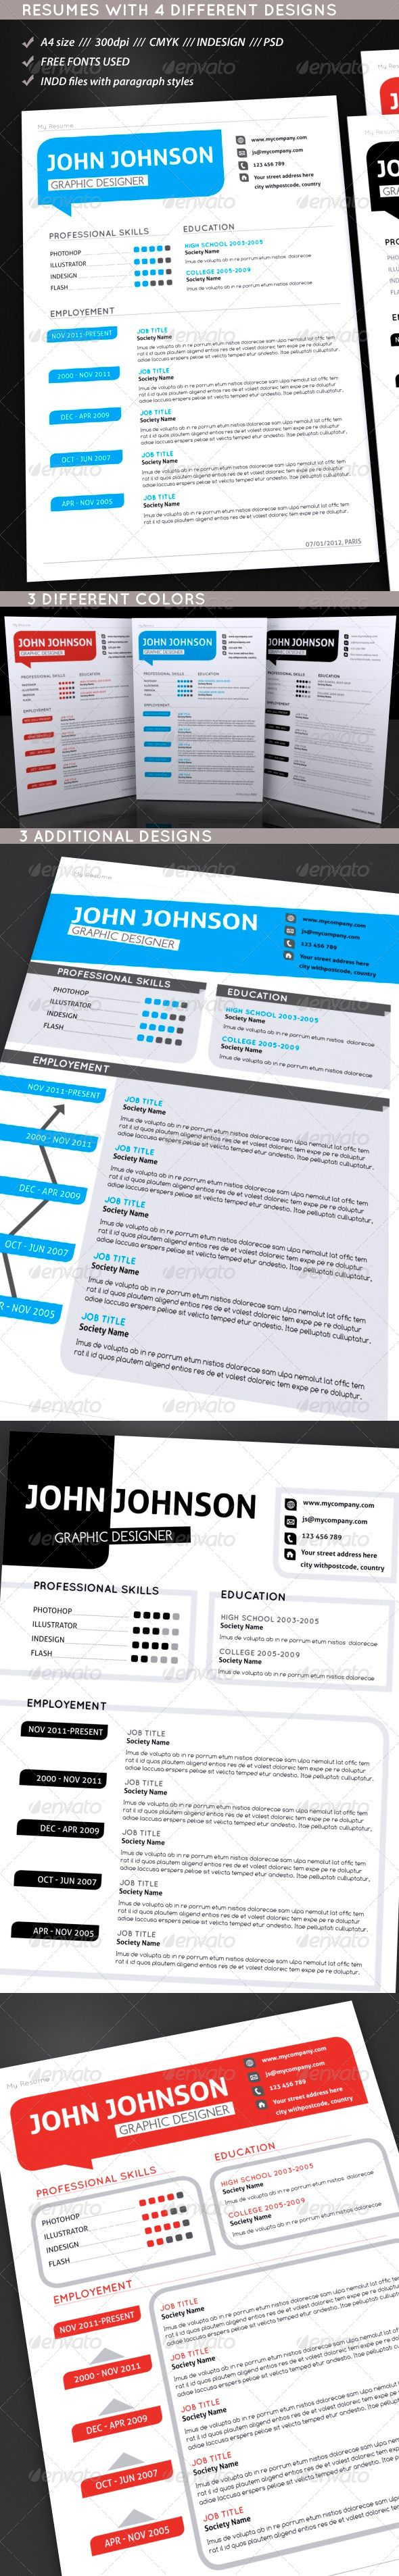 best images about modern resumes resume set of modern resumes